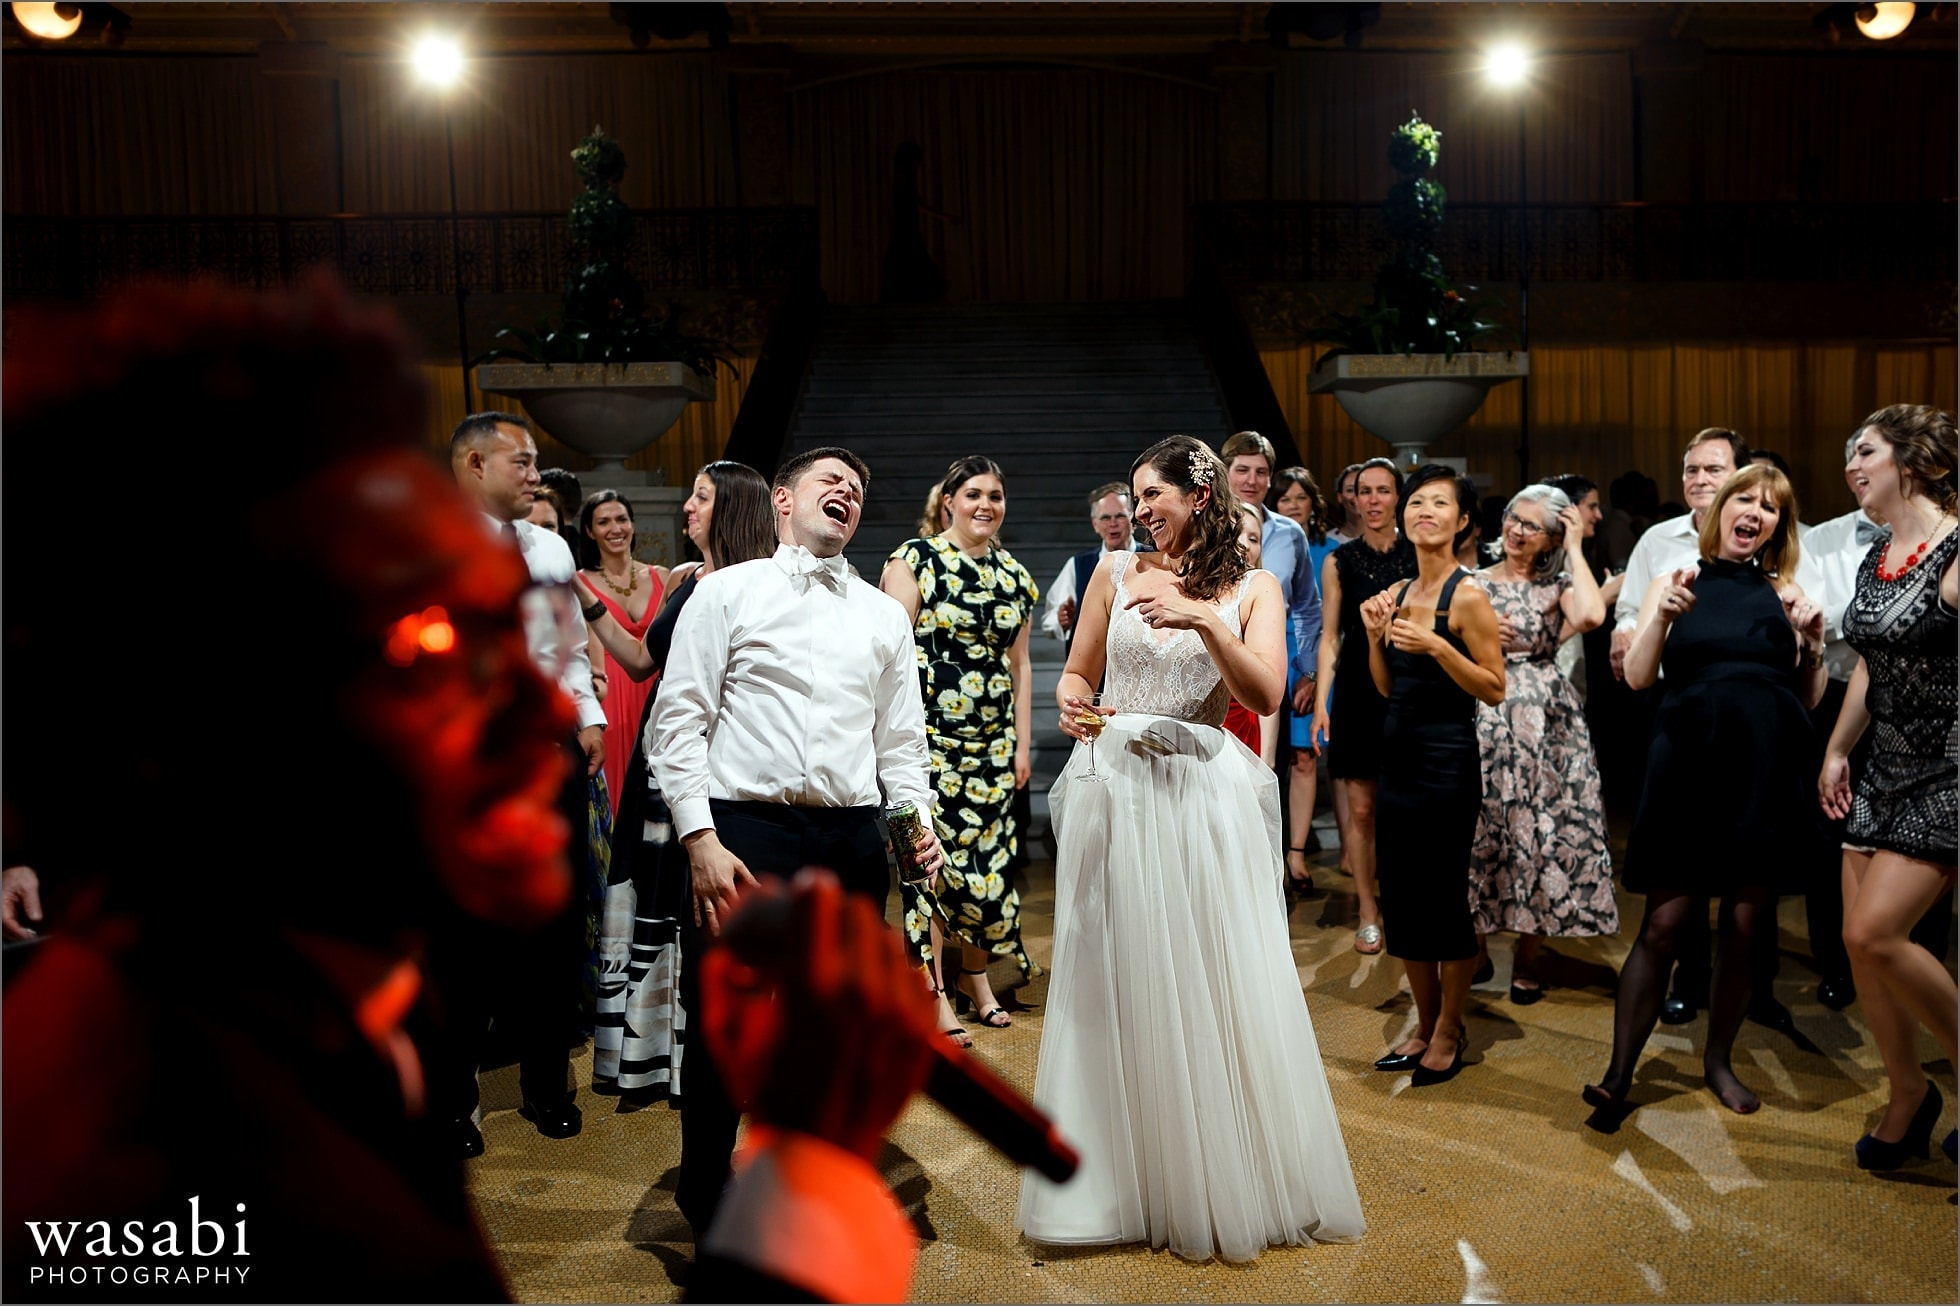 bride and groom dance with band singing in the forground during wedding reception at The Rookery Building in Chicago